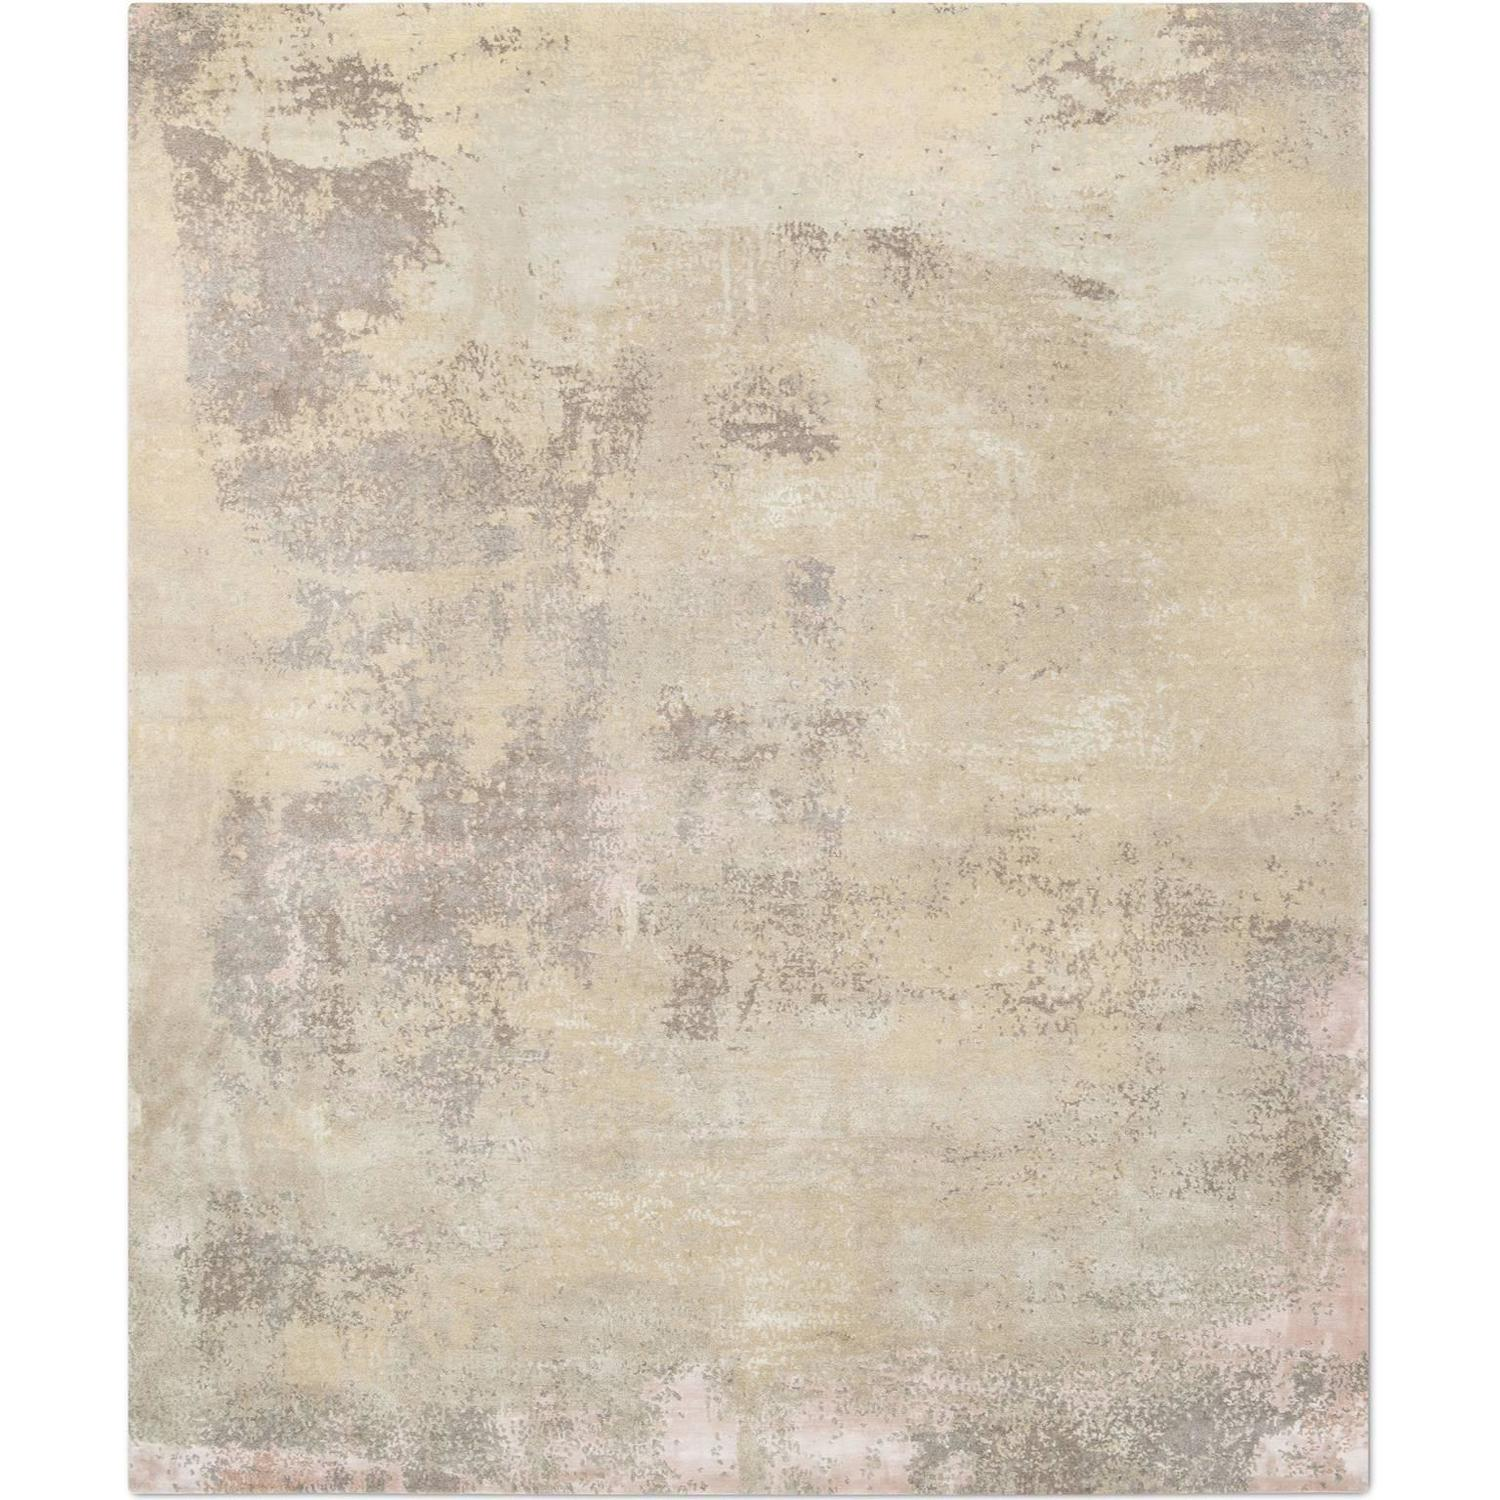 Elements No 01 Light Gold Blush Hand Knotted Tibetan